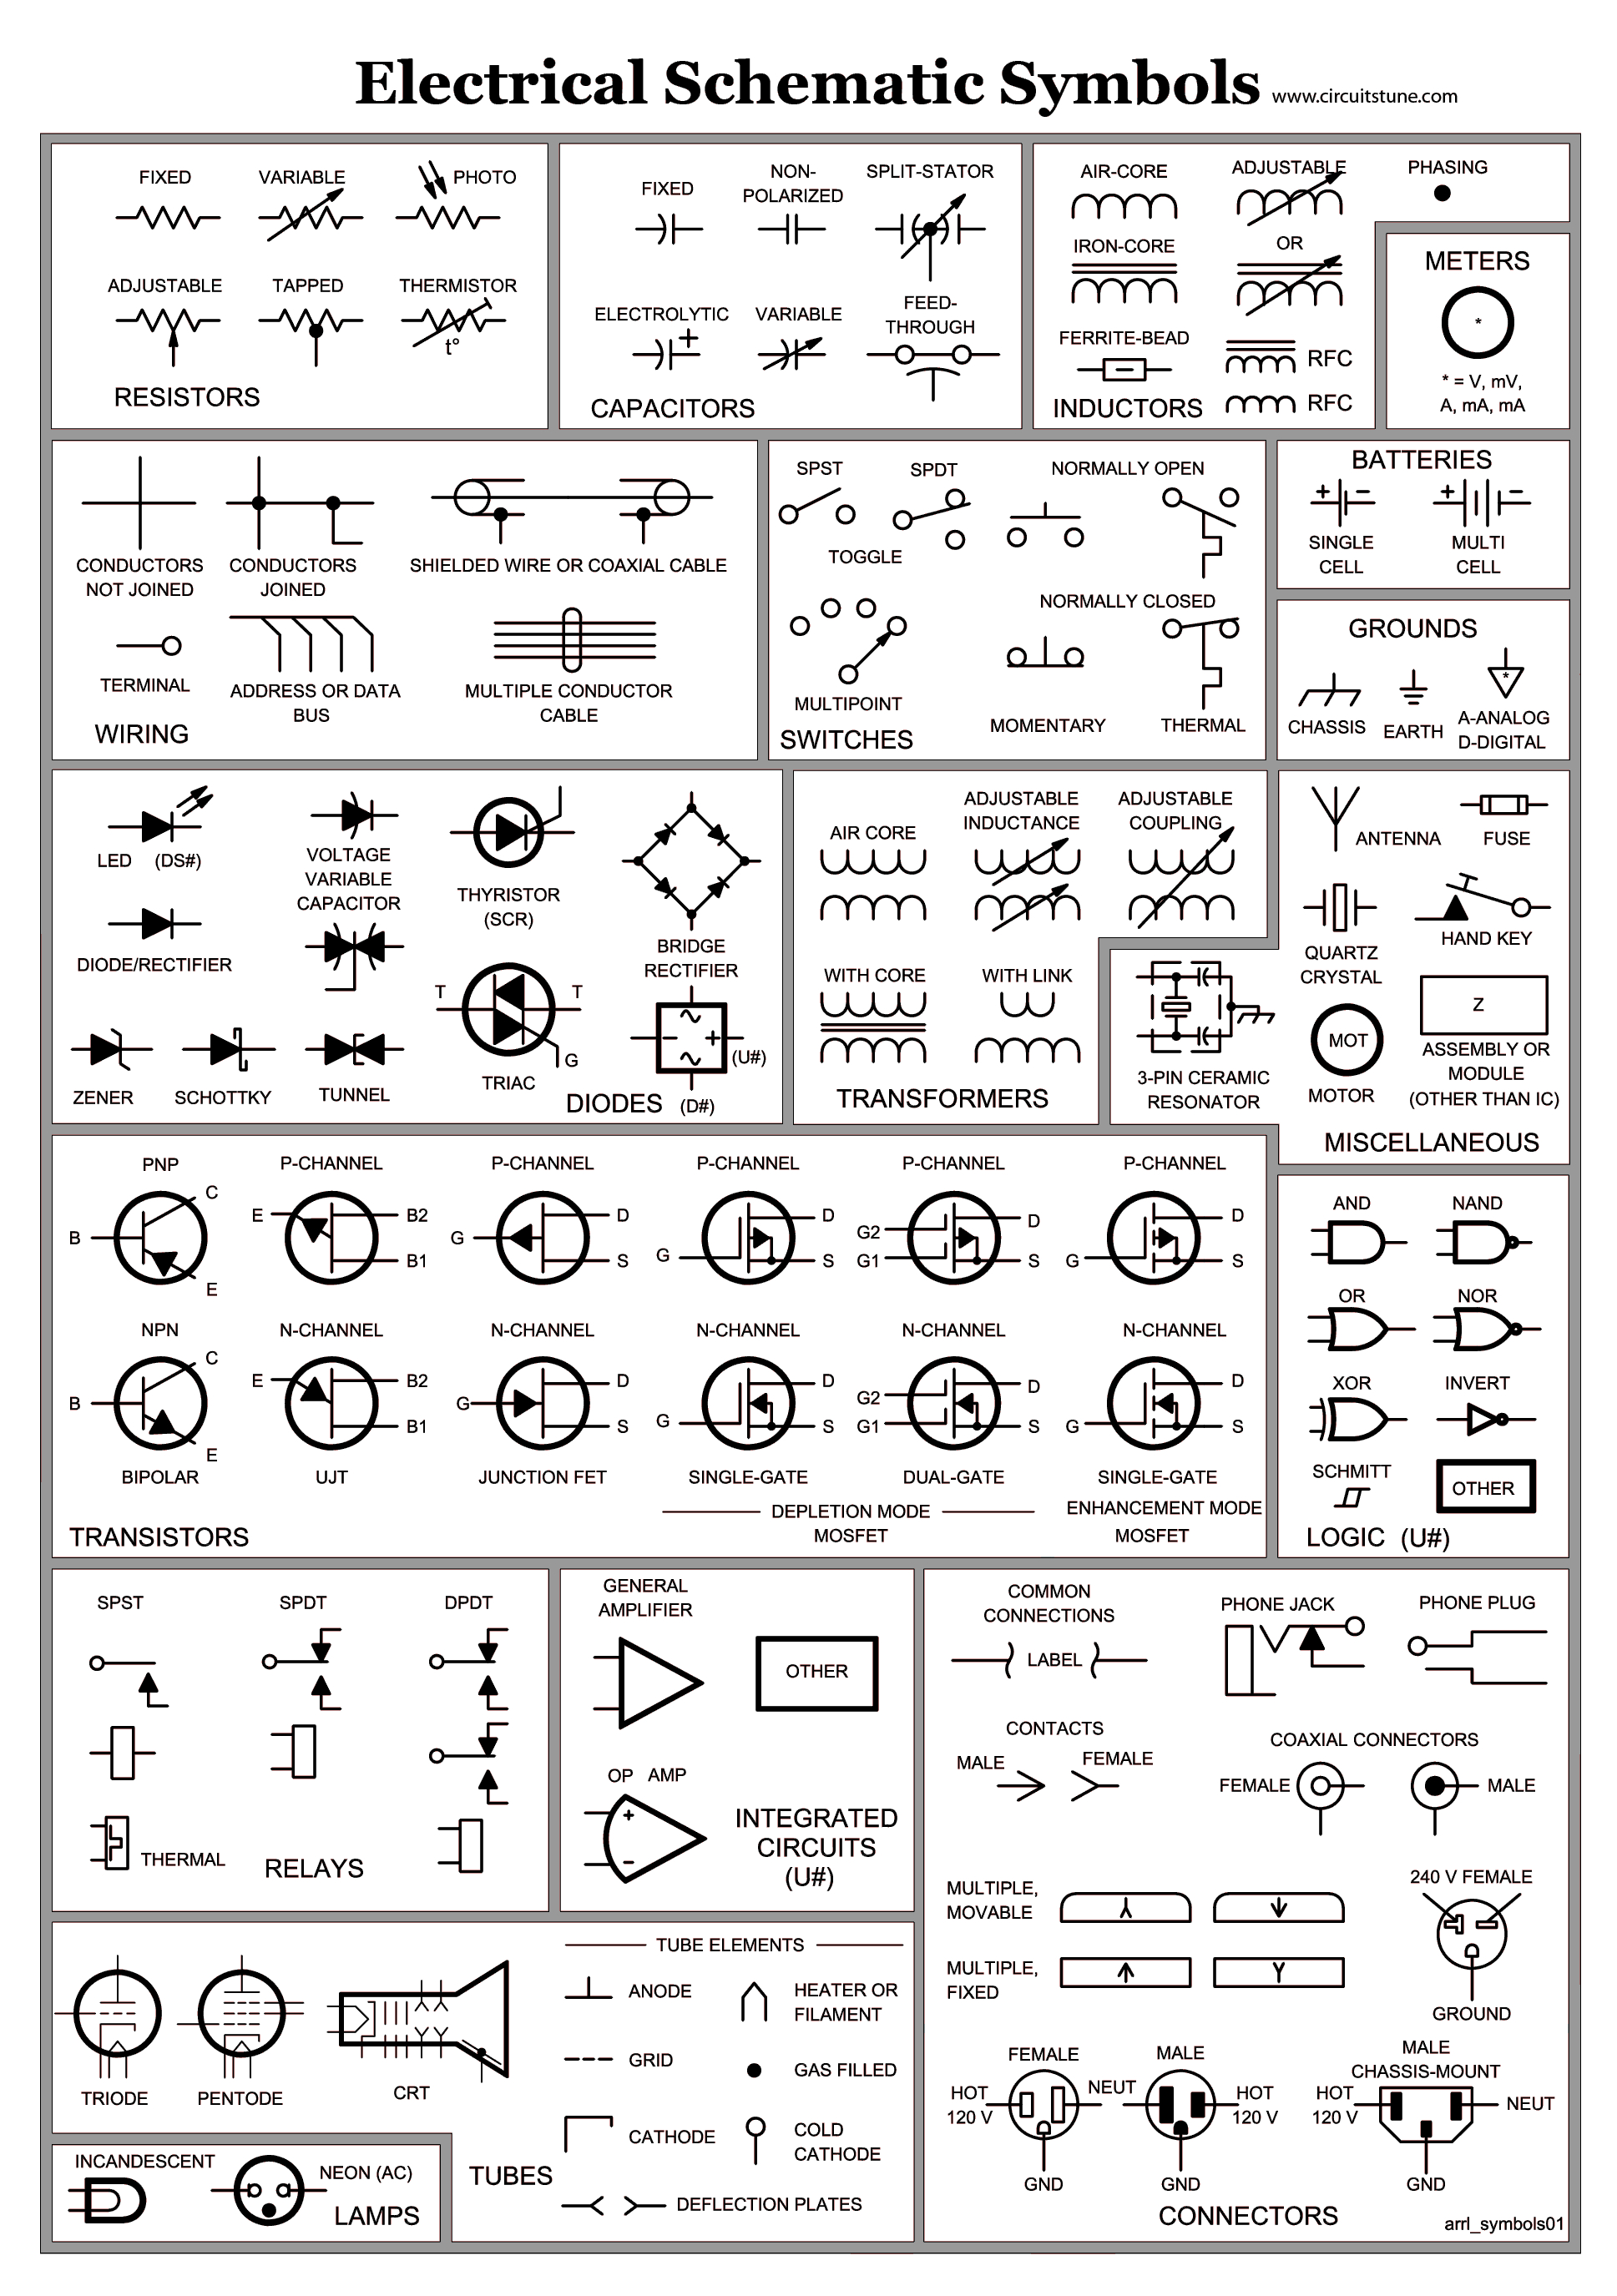 Electrical Schematic Symbols | Skinsquiggles | Pinterest - Electrical Wiring Diagram Symbols